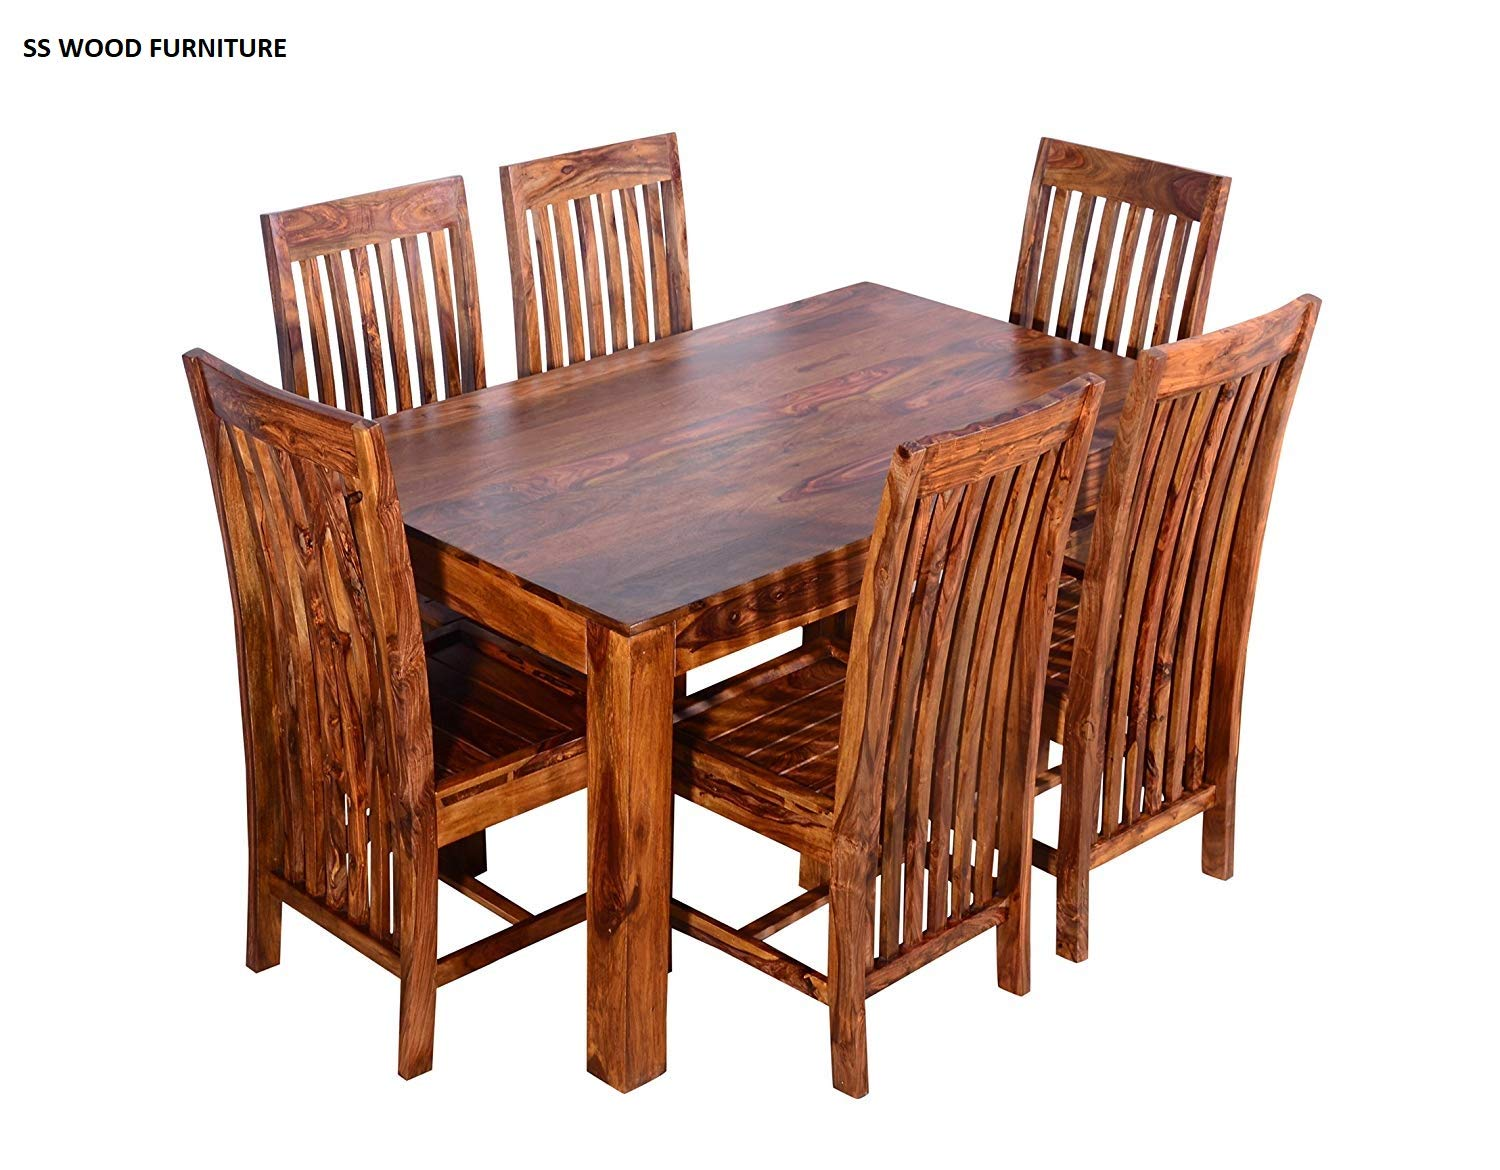 Ss Wood Furniture Six Seater Solid Wood Dining Table Teak Finish